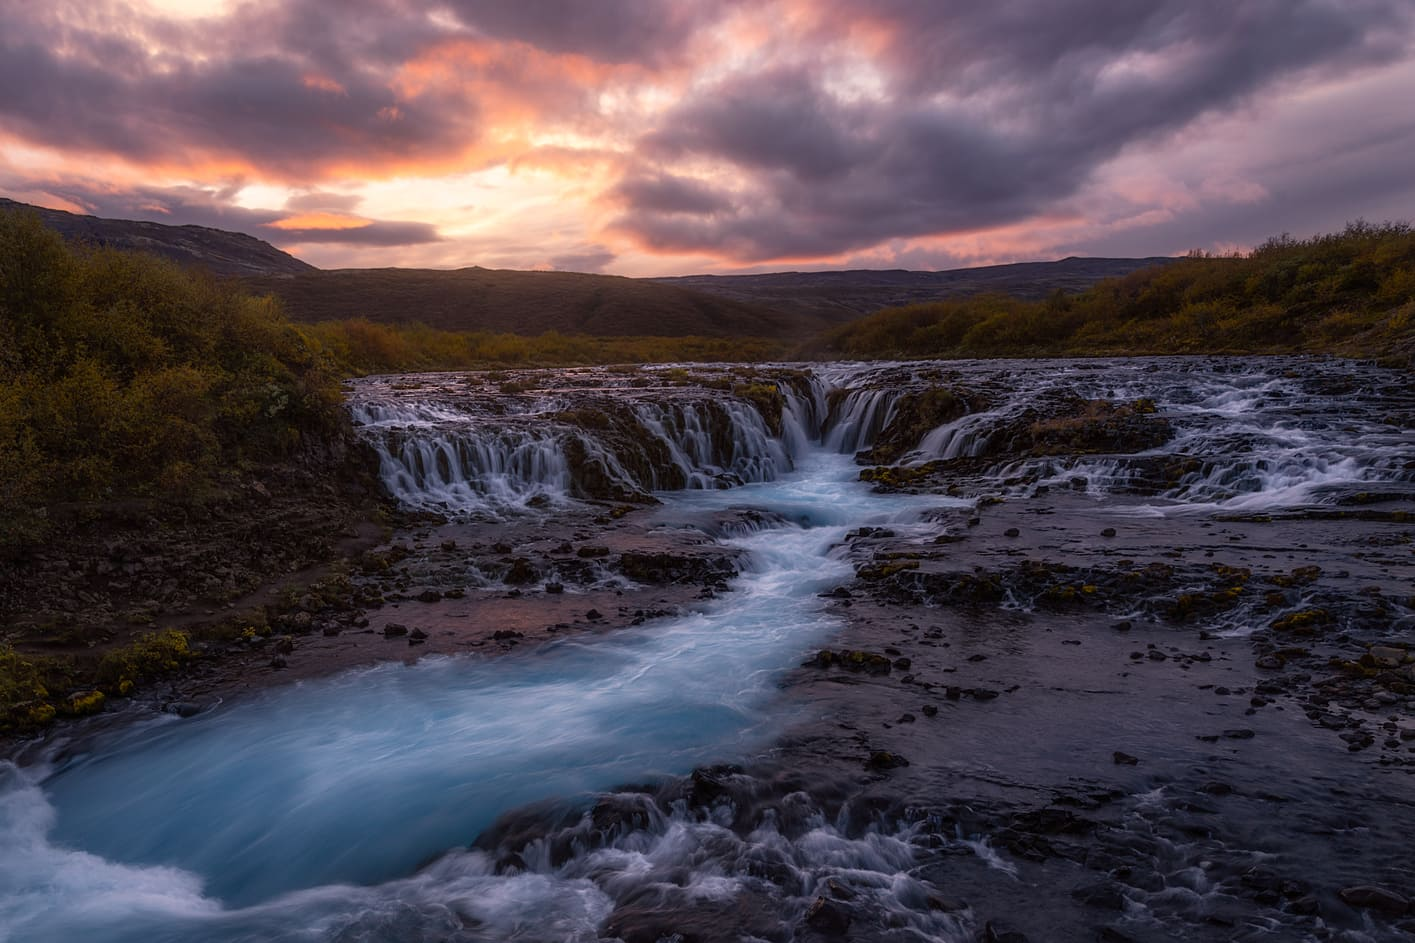 midnight sun iceland 24 hours daylight bruarfoss